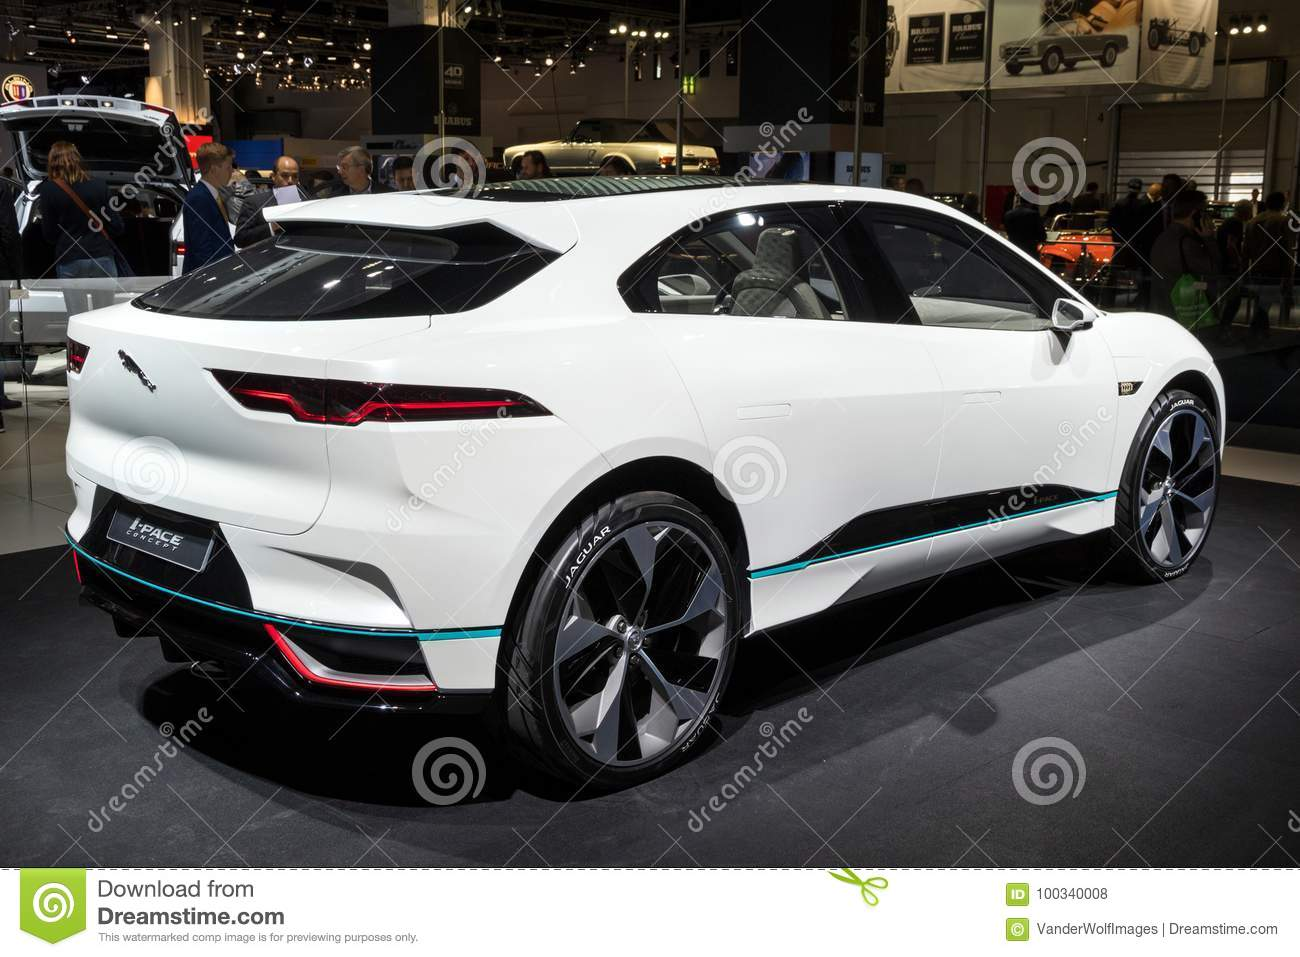 Jaguar I Pace Concept Electric SUV Car